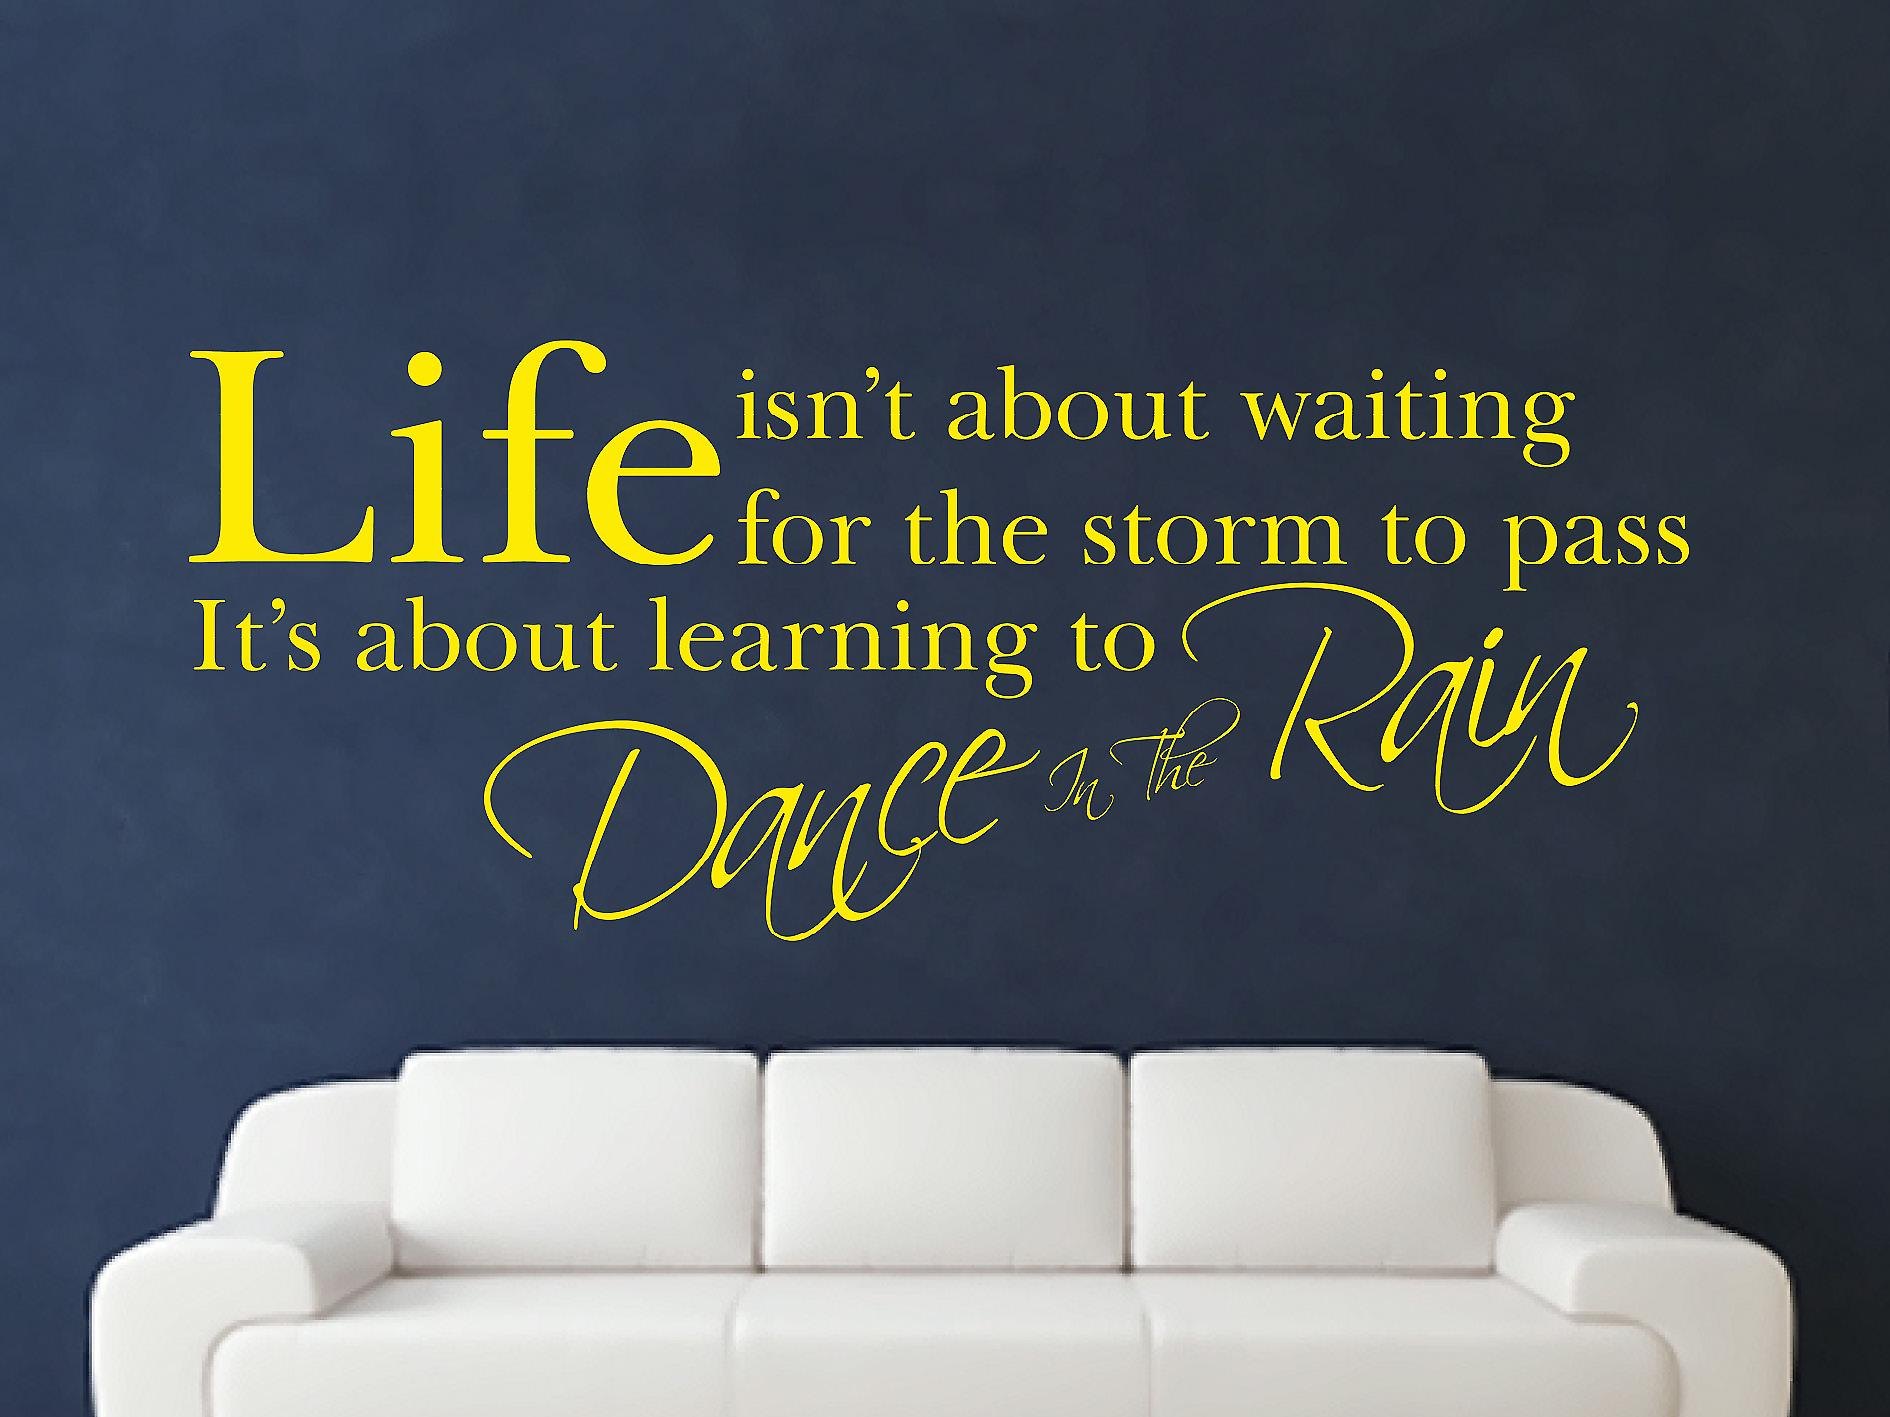 Dance In The Rain Wall Art Sticker - Bright Yellow